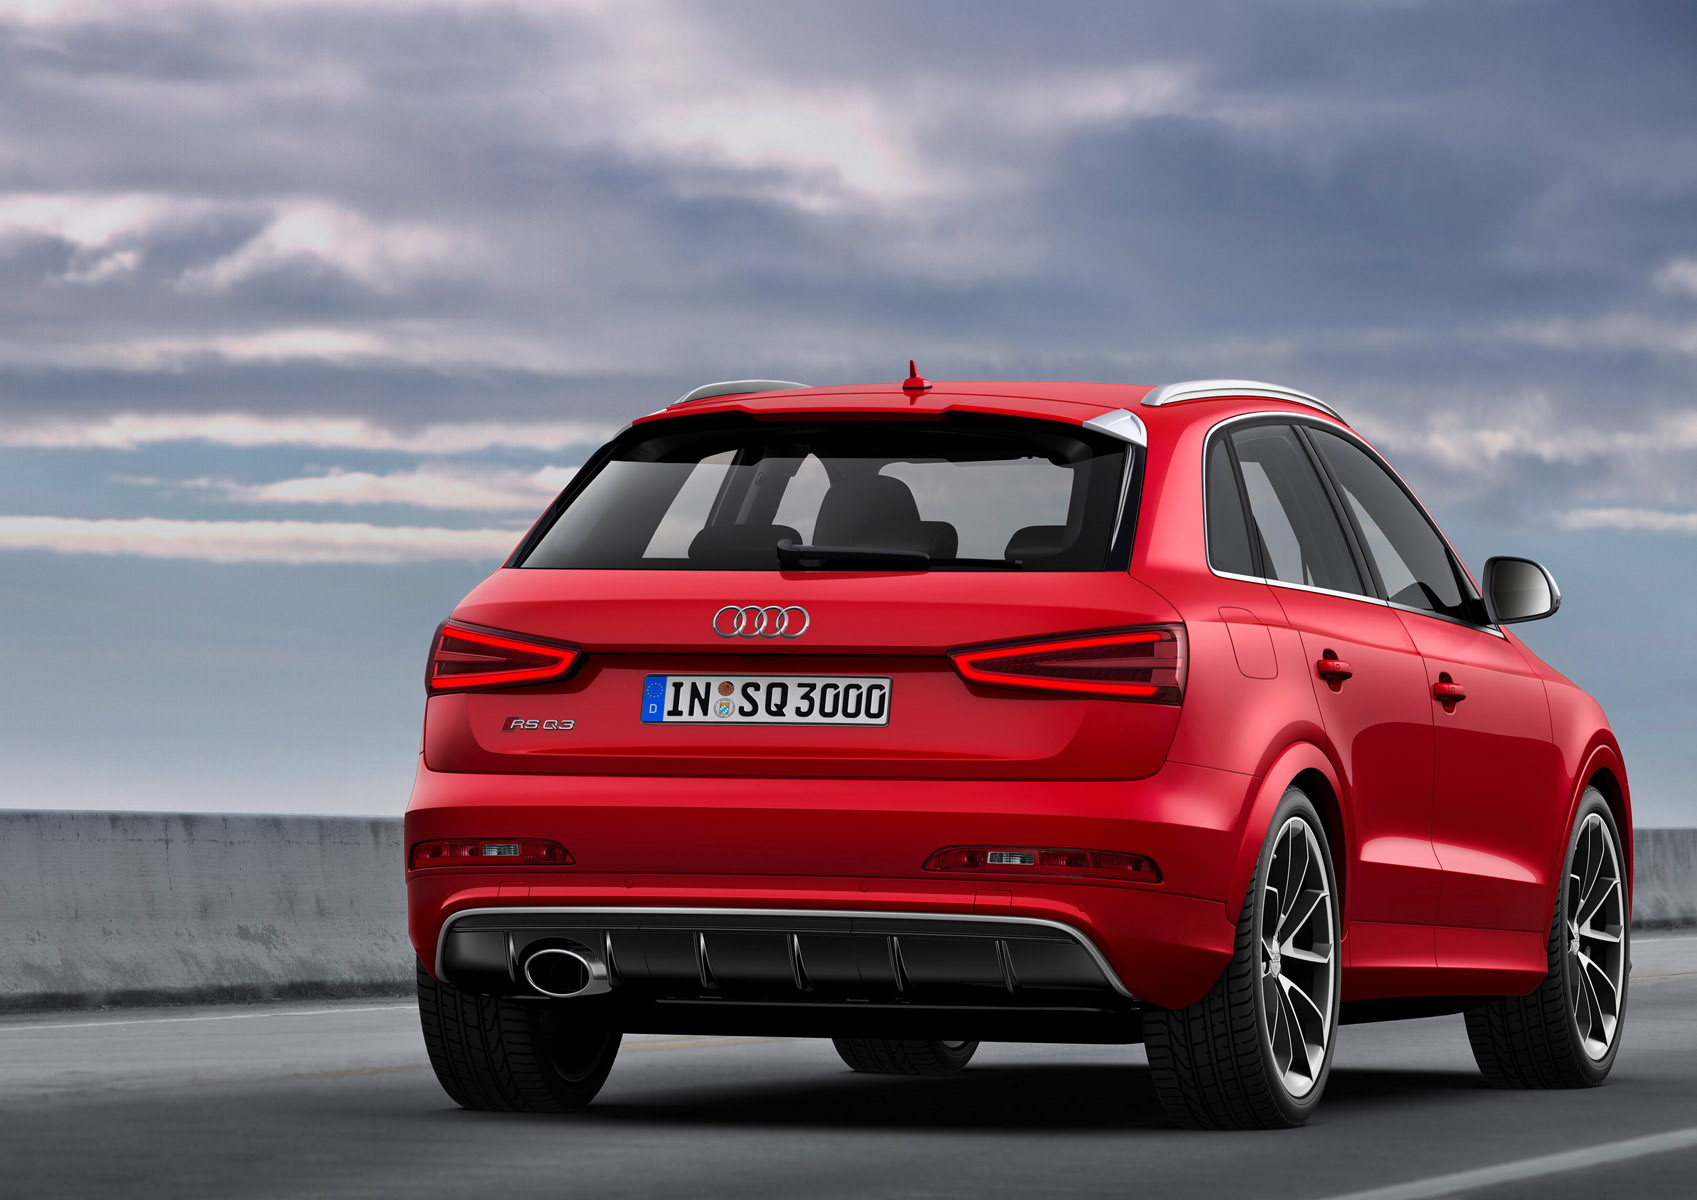 Audi RSQ3 2016 Vs RSQ3 2015: What is new?